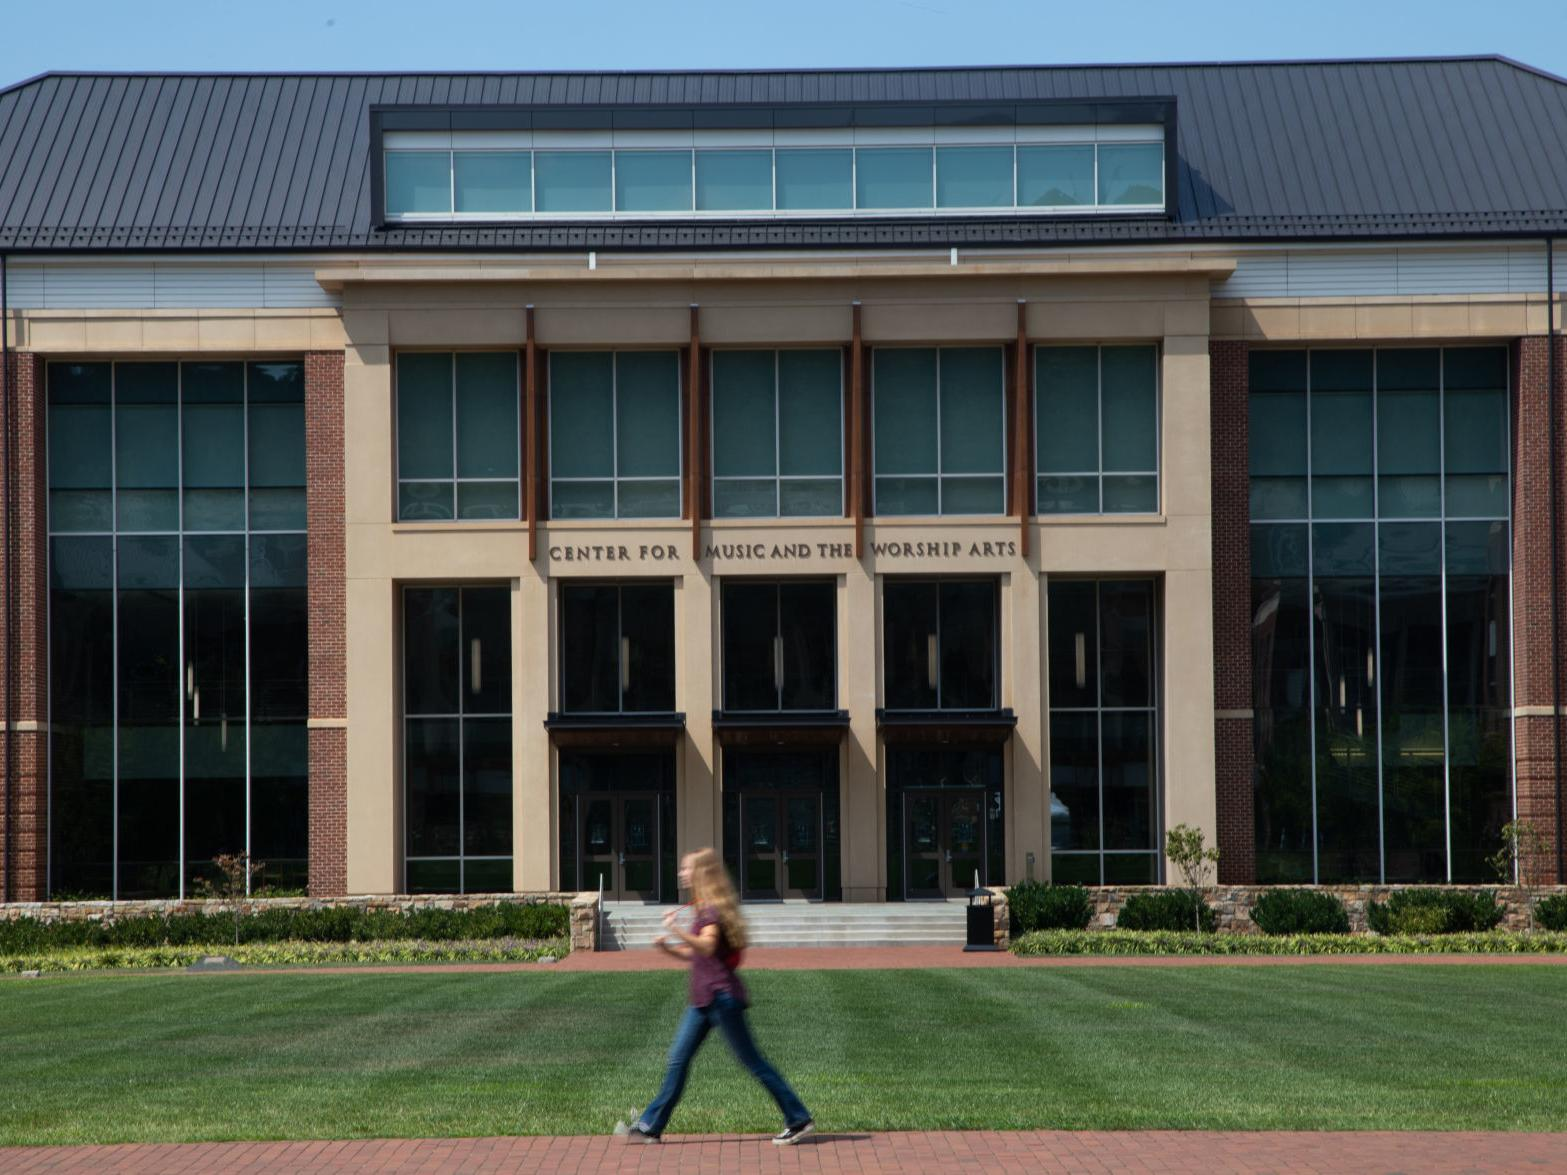 Journalists Accused Of Trespassing At Liberty University Will Not